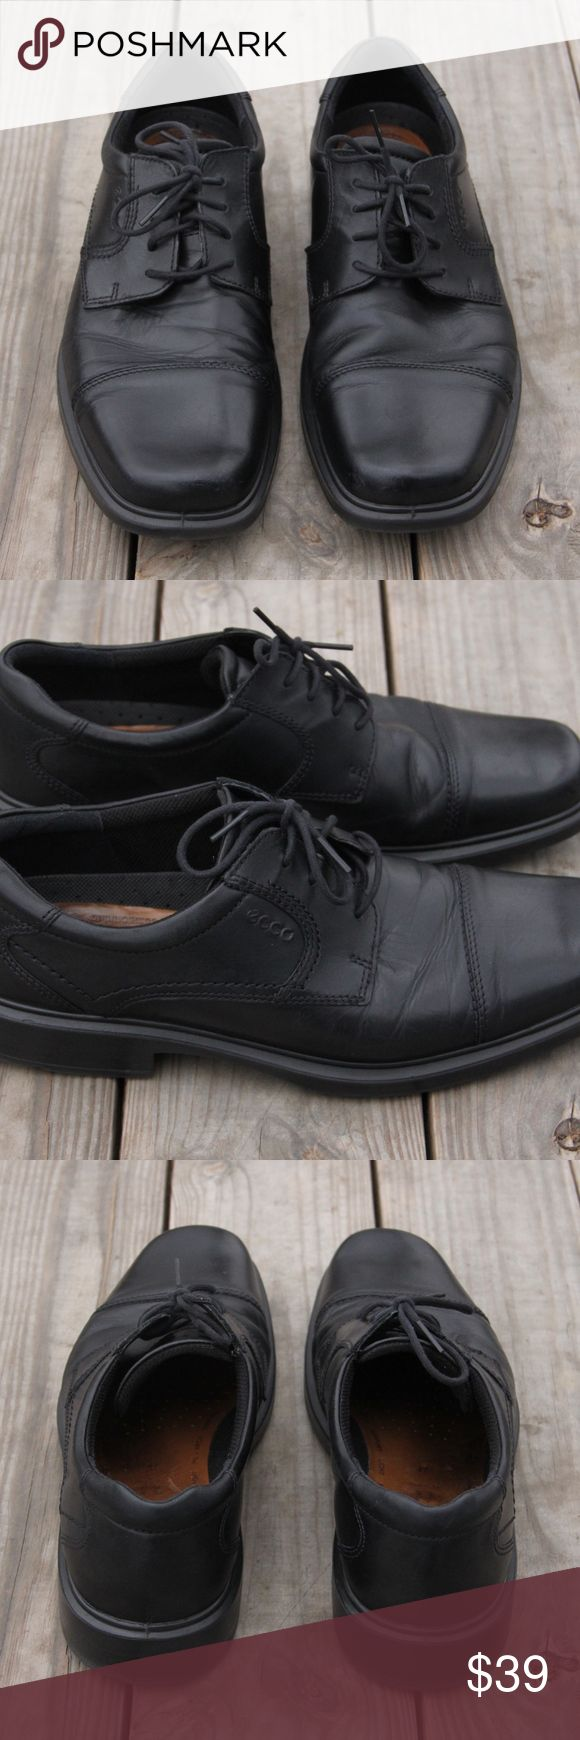 253463b2a5d2 ECCO Mens Helsinki Cap Toe Lace Up Oxfords Size 14 ECCO Mens Helsinki Cap  Toe Lace Up Oxford Black Dress Shoes Sz EUR 47 US 13 14 Same Day Free  Shipping!